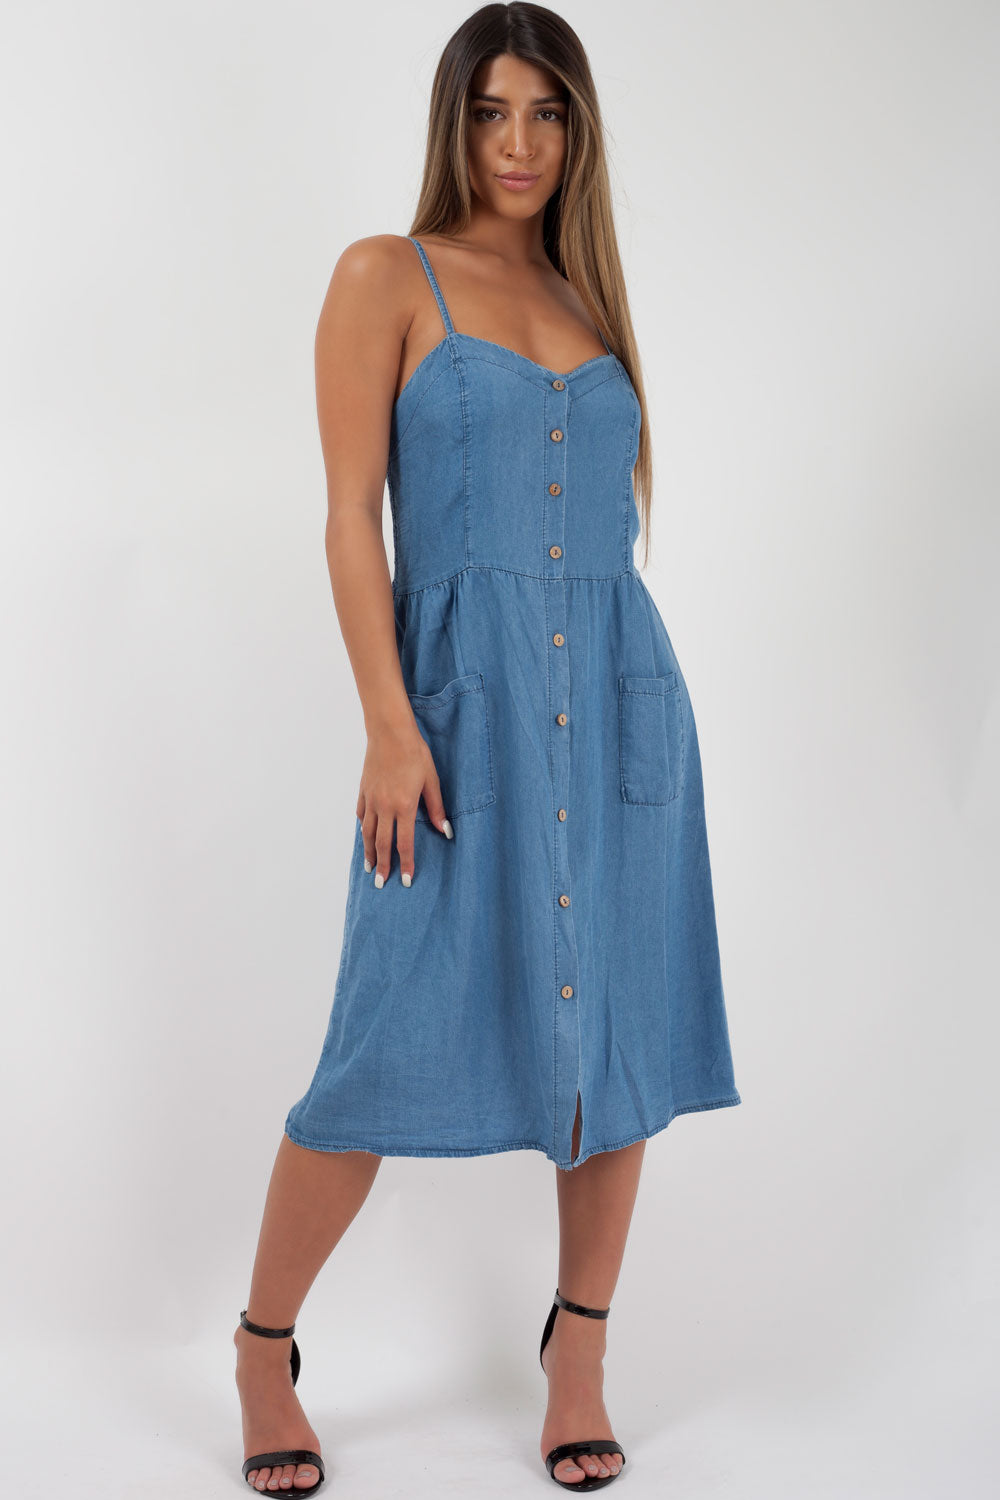 c96c9d83b33 Mid Wash Denim Summer Dress Holiday Outfit